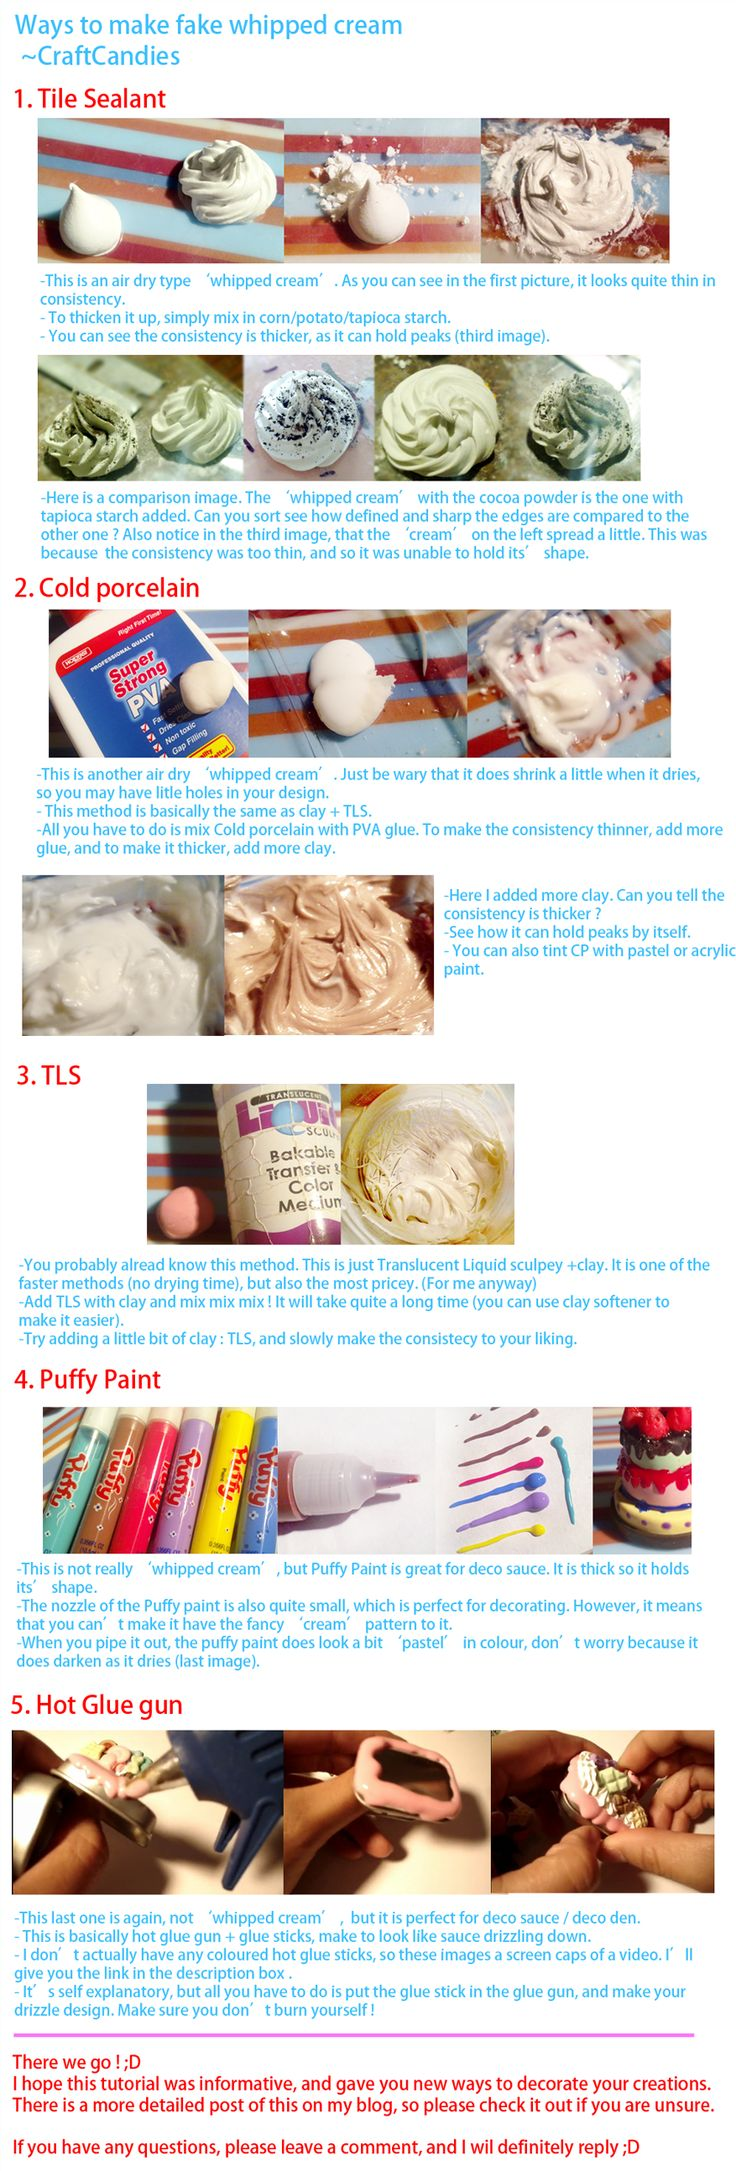 Polymer Clay : Whipped Cream alternatives by ~CraftCandies on deviantART, Using Tile Sealant, Cold Porcelain, TLS, Puffy Paint or Hot Glue Gun